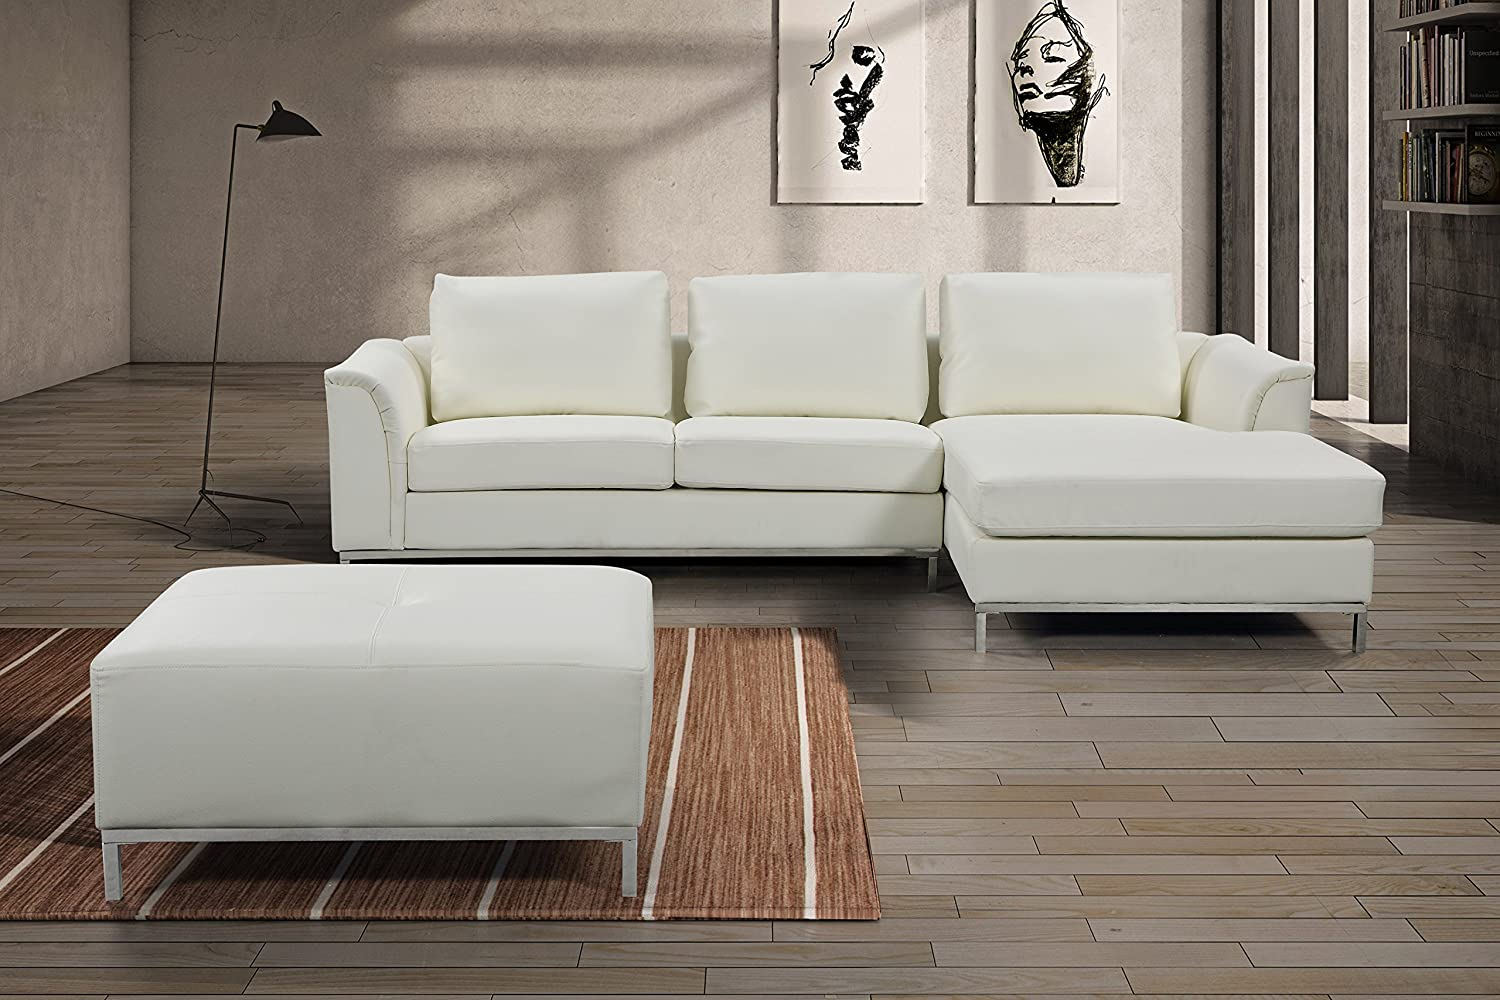 ACME Furniture Lyssa Bonded Leather Sectional with Ottoman in Black